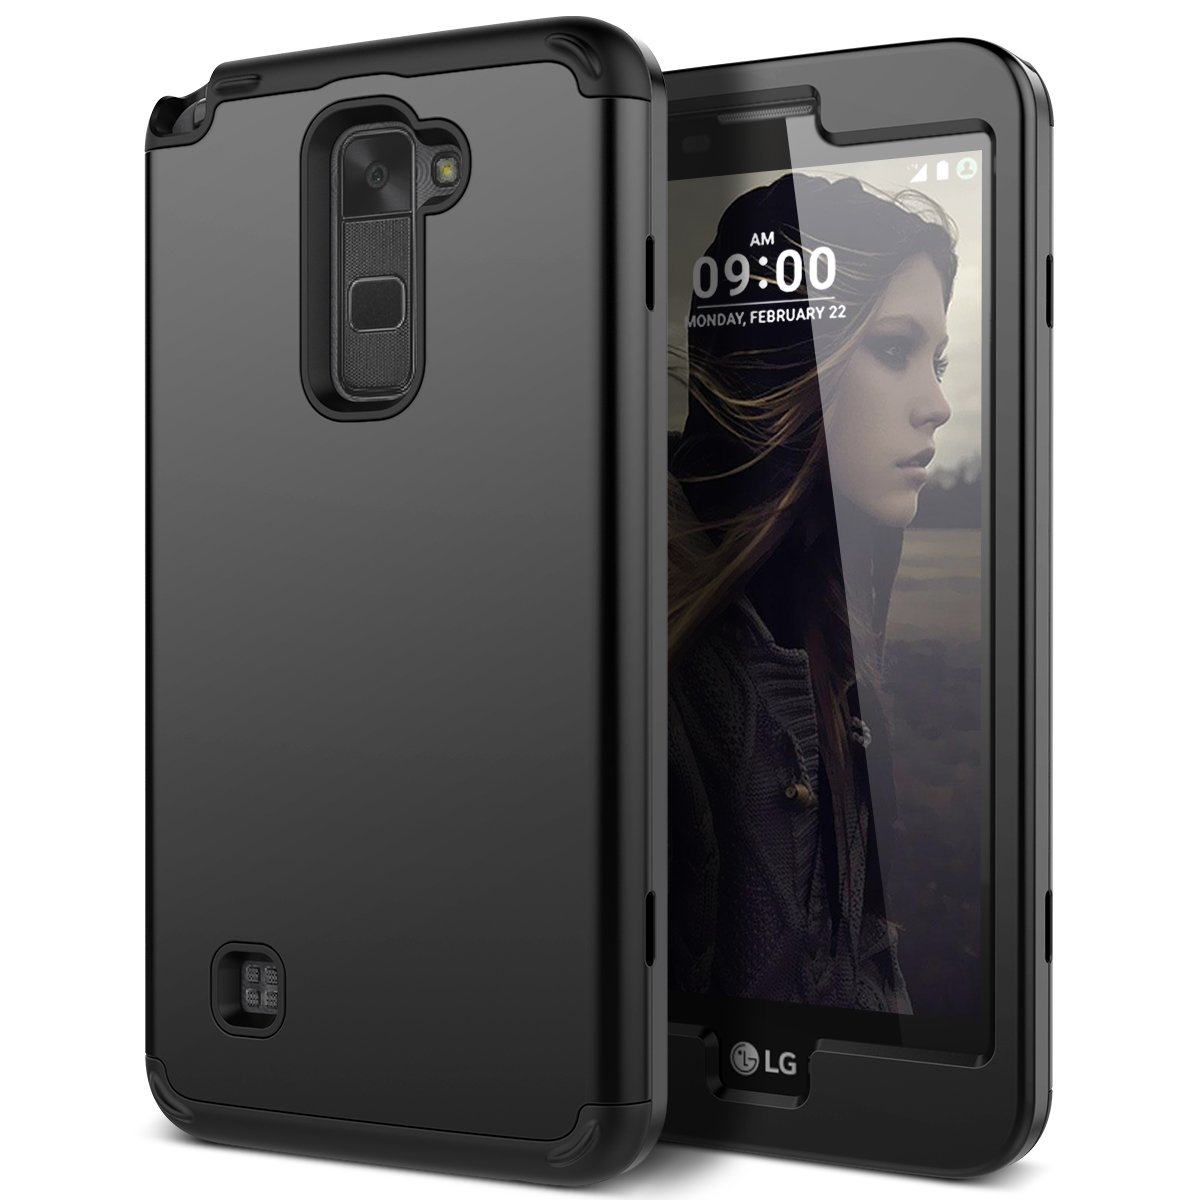 LG Stylus 2 Case, WeLoveCase Heavy Duty Drop Protection Case Shockproof Silicone Bumper + High Impact Hard PC 3 in 1 Hybrid Protective Case Cover for LG Stylus 2 / LG G Stylo 2 (LS775) - Black